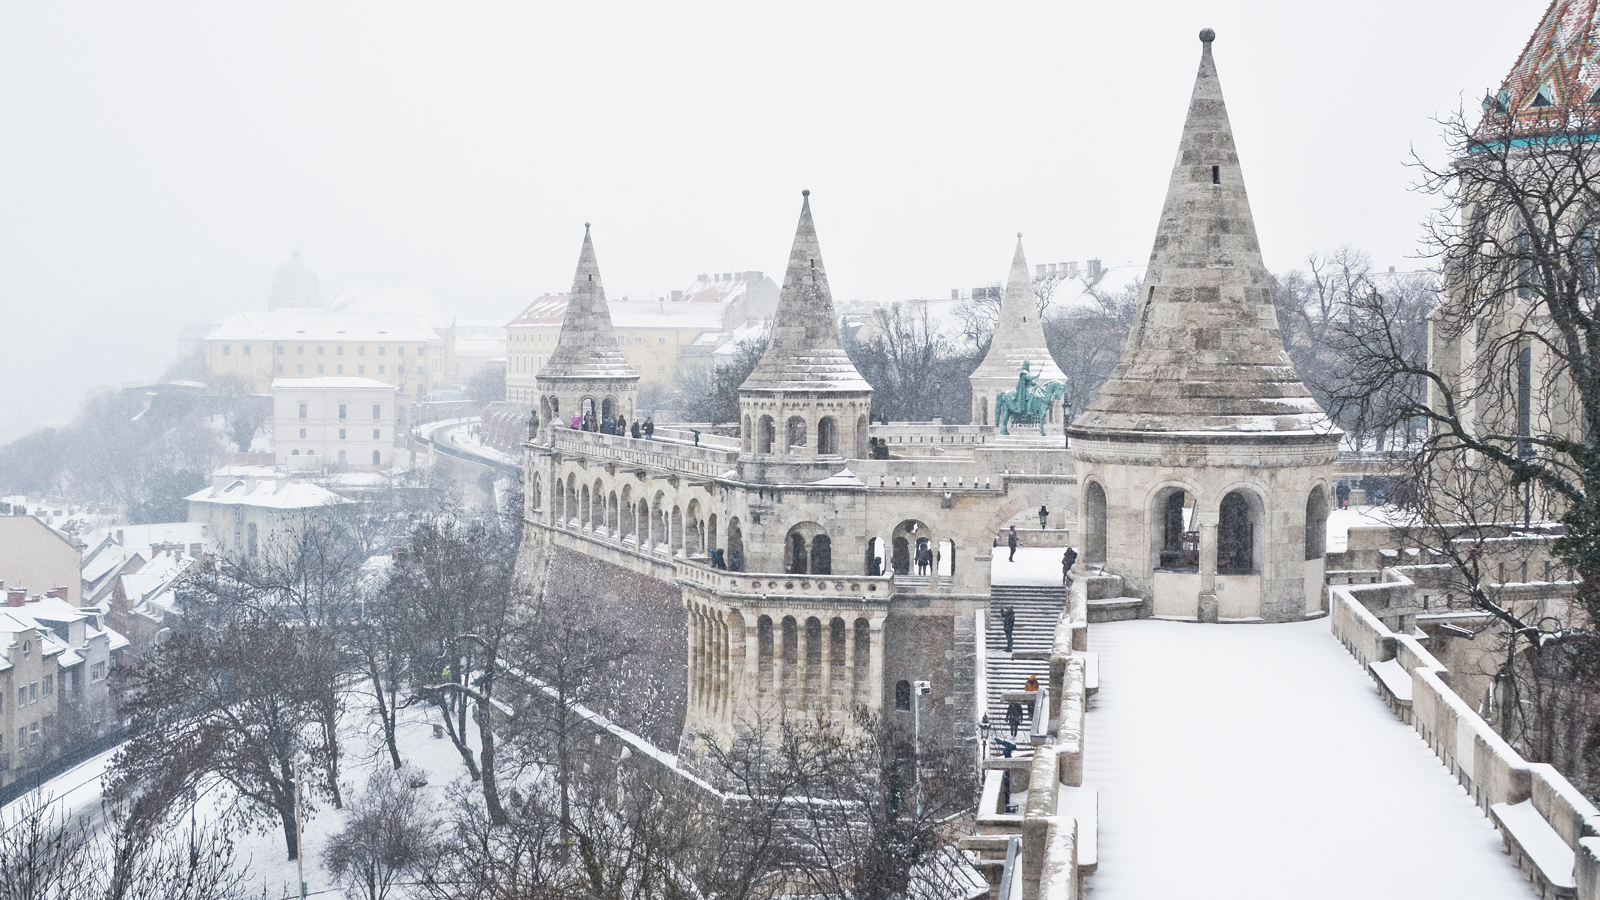 budapest in winter: 10 best things to do on your trip | cnn